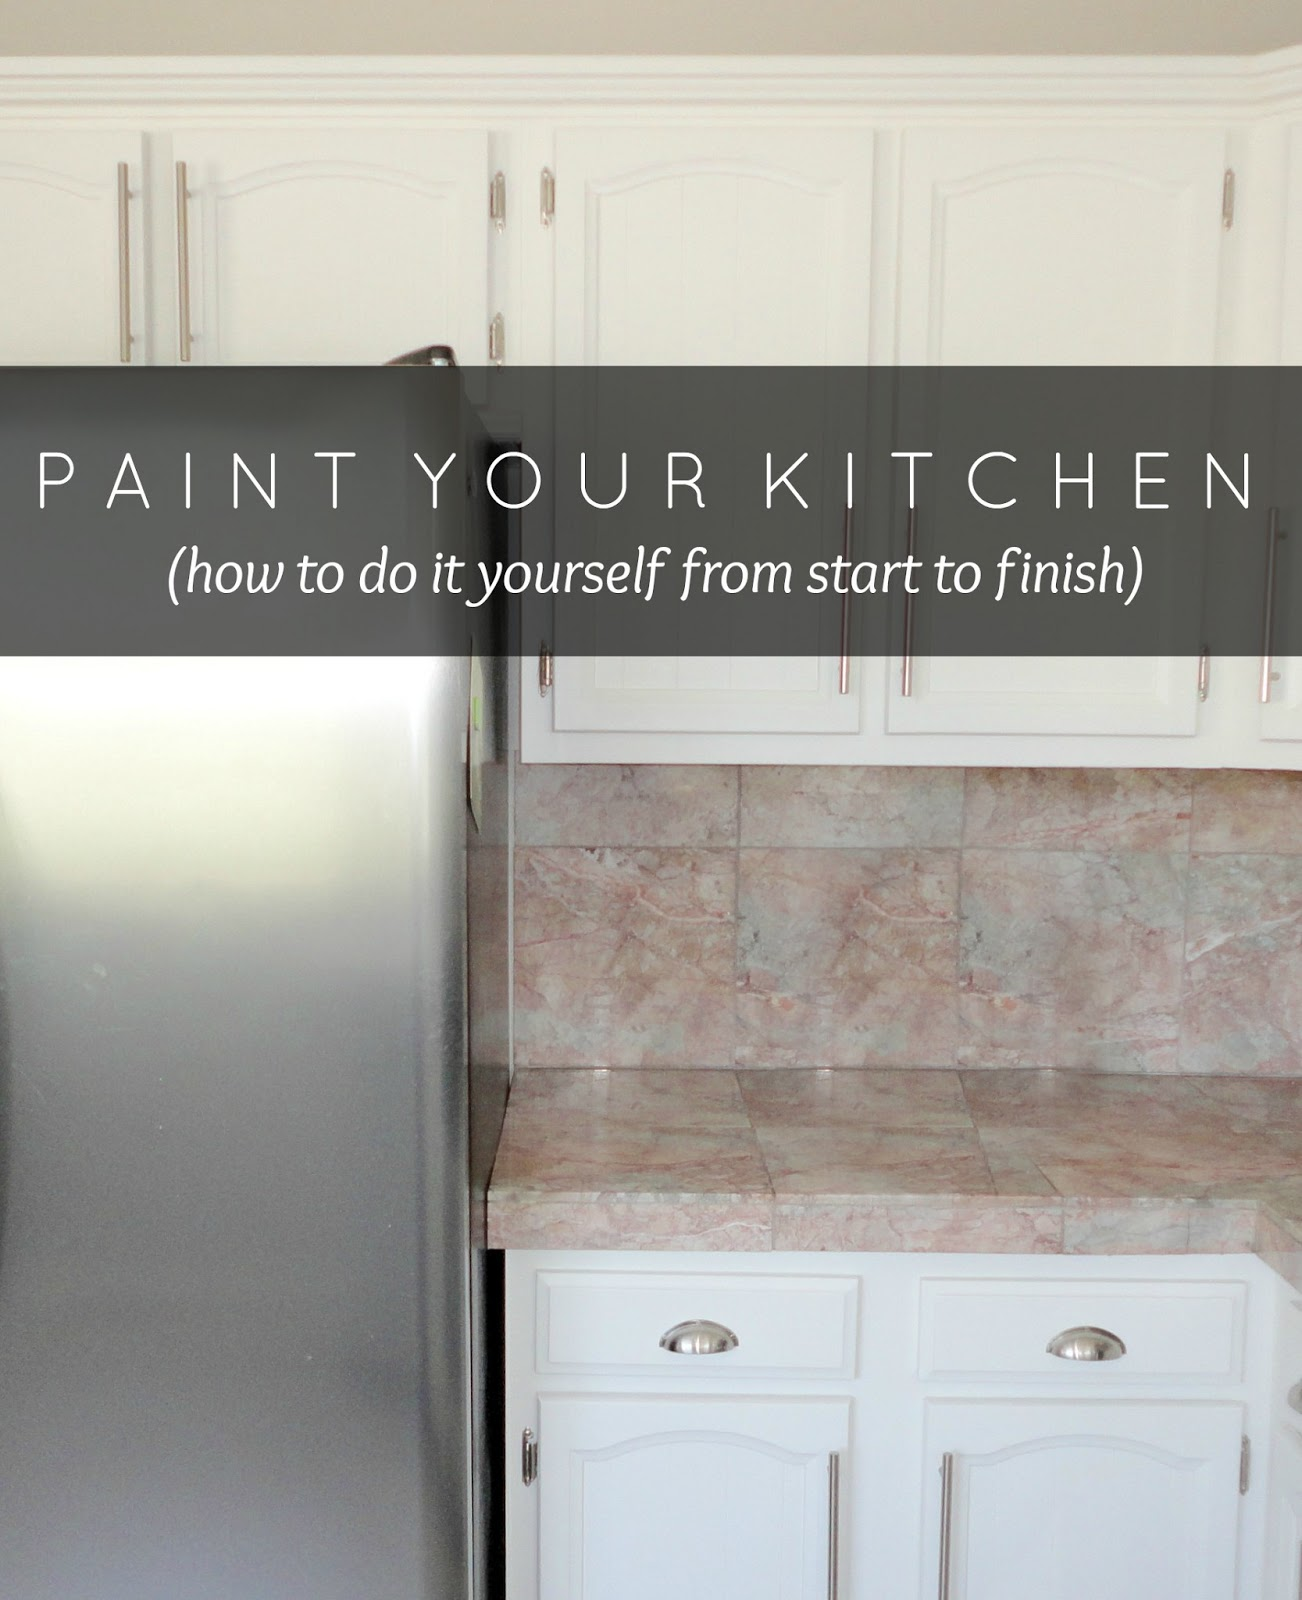 how to paint kitchen cabinets in 10 easy steps - Do It Yourself Painting Kitchen Cabinets